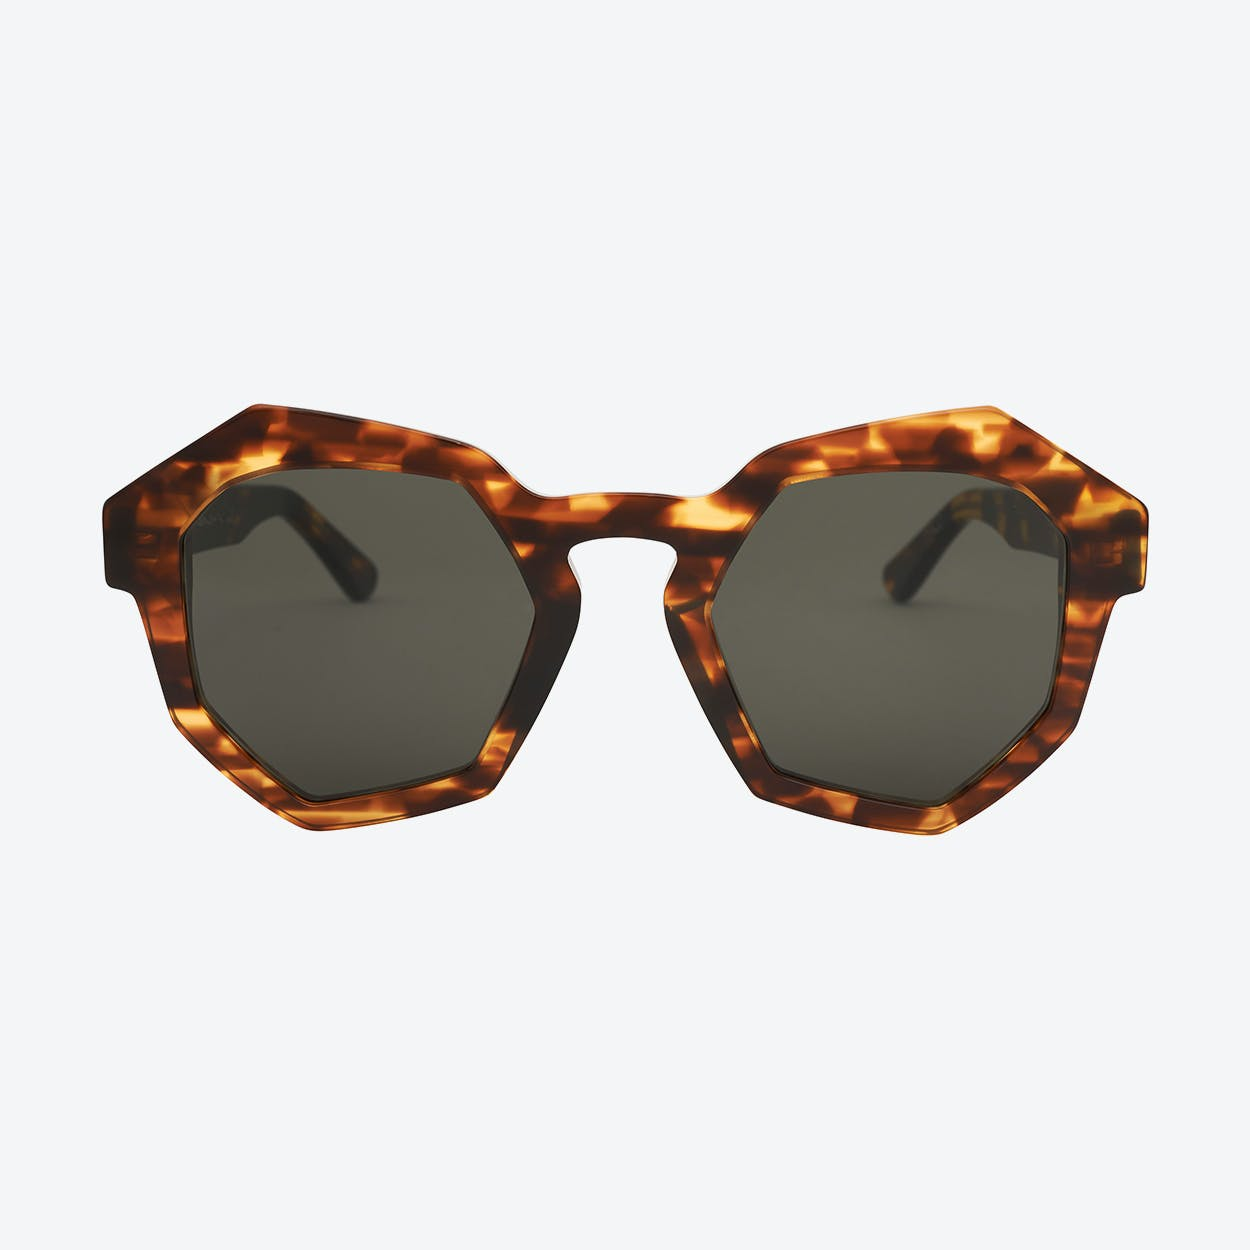 Hoxton Sunglasses in Tortoise